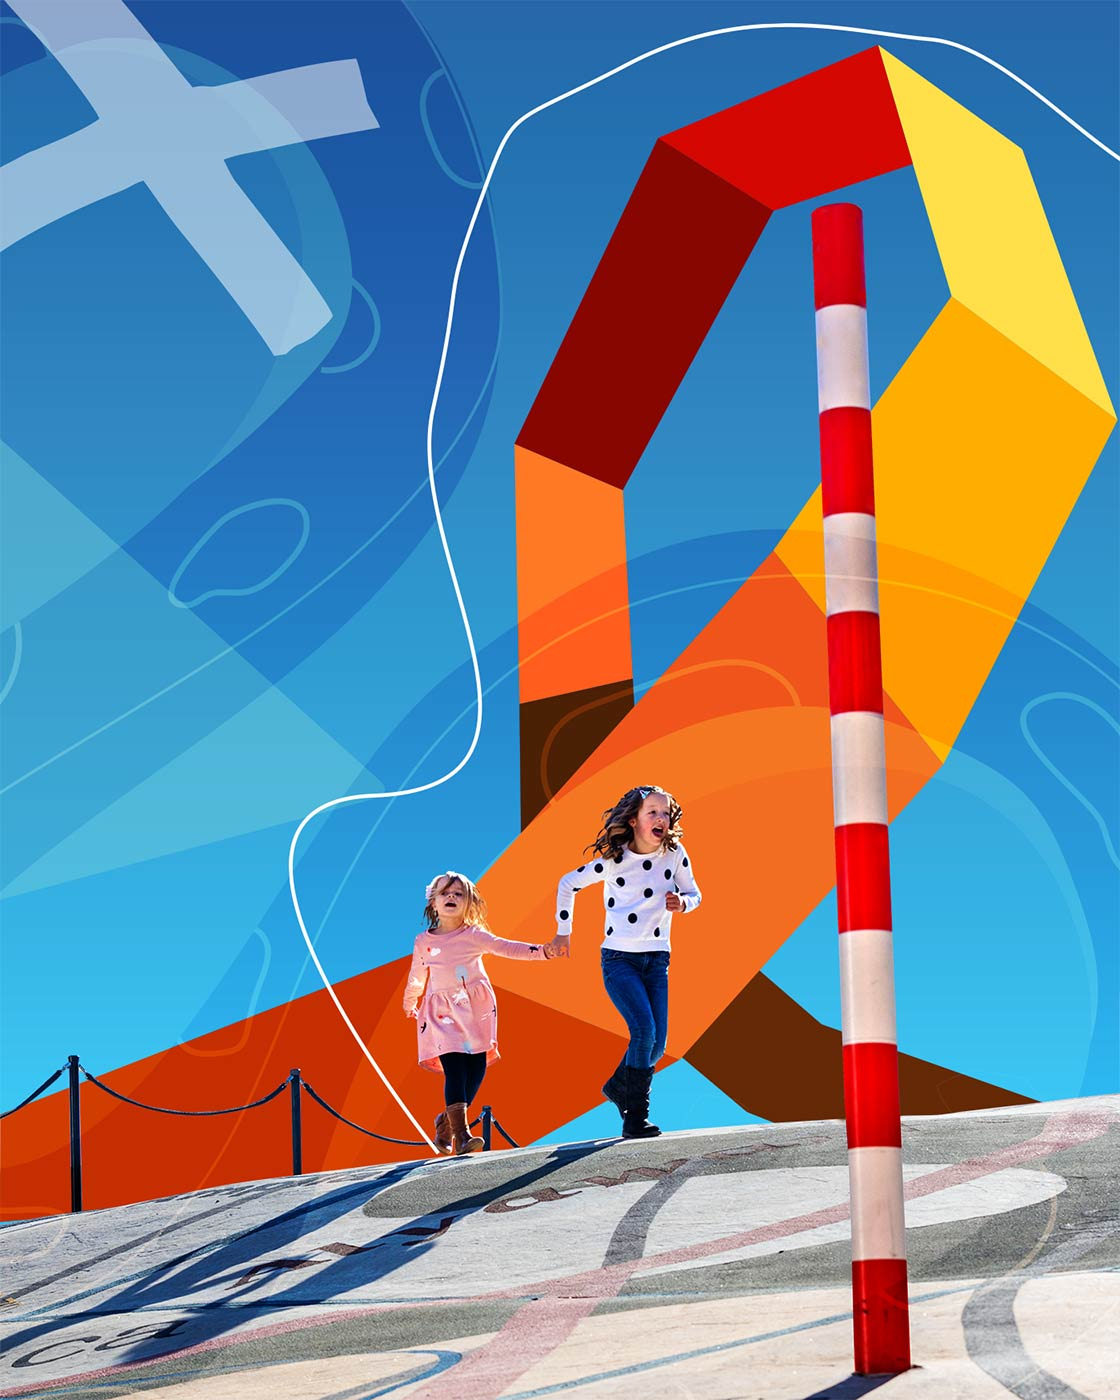 Composite image including two young girls holding hands and running, and various graphic art features.